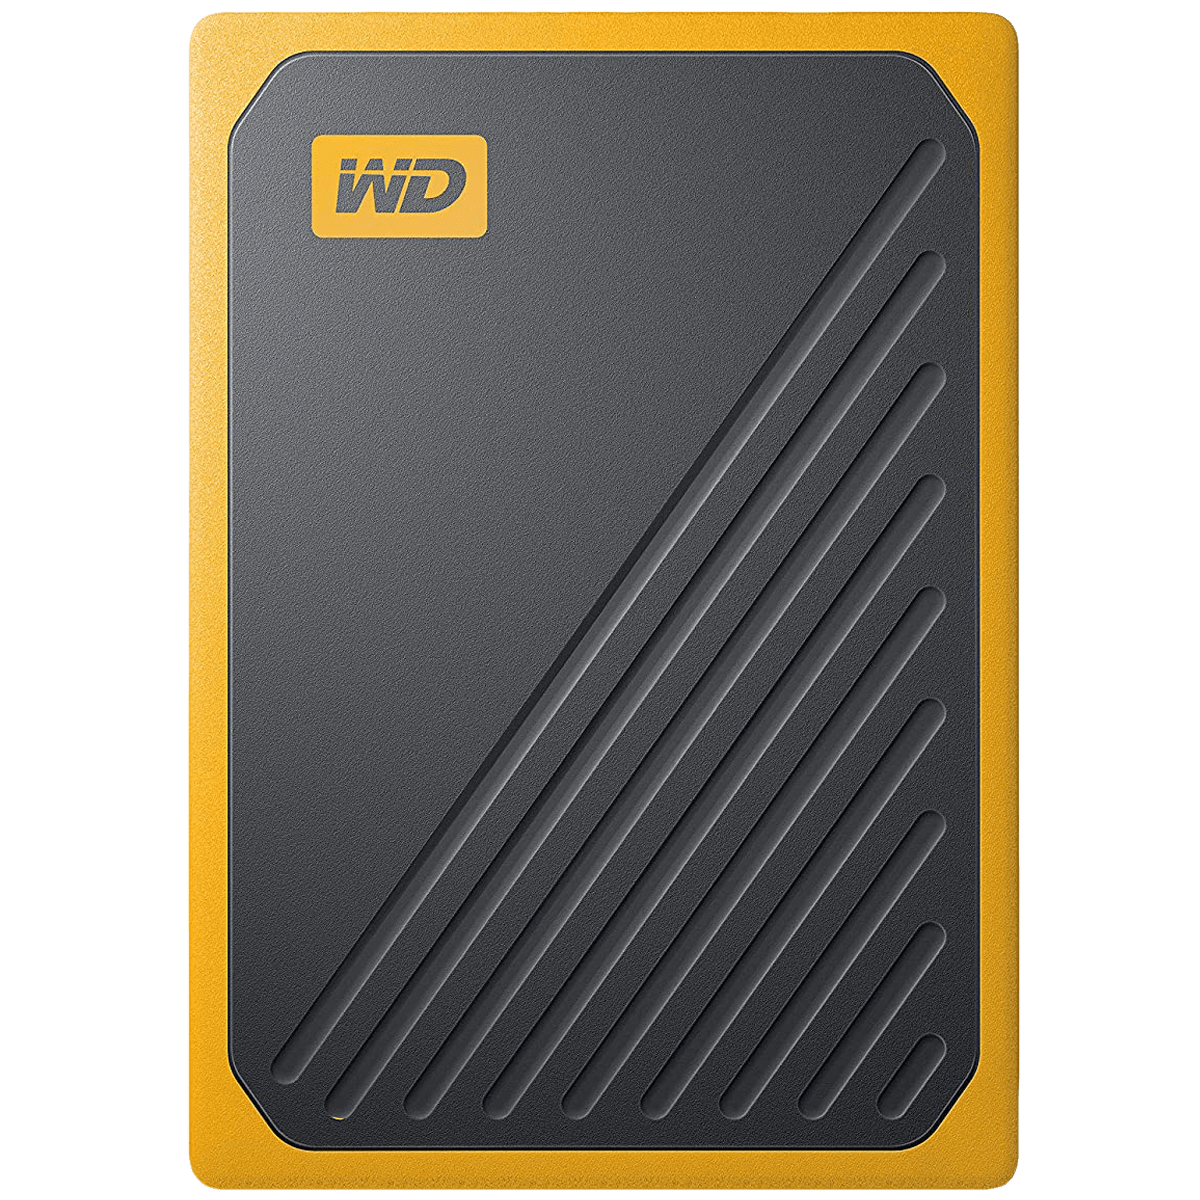 Western Digital My Passport Go 500GB USB 3.0 Solid State Drive (Compact and Integrated, WDBMCG5000ABT-WESN, Black/Amber Trim)